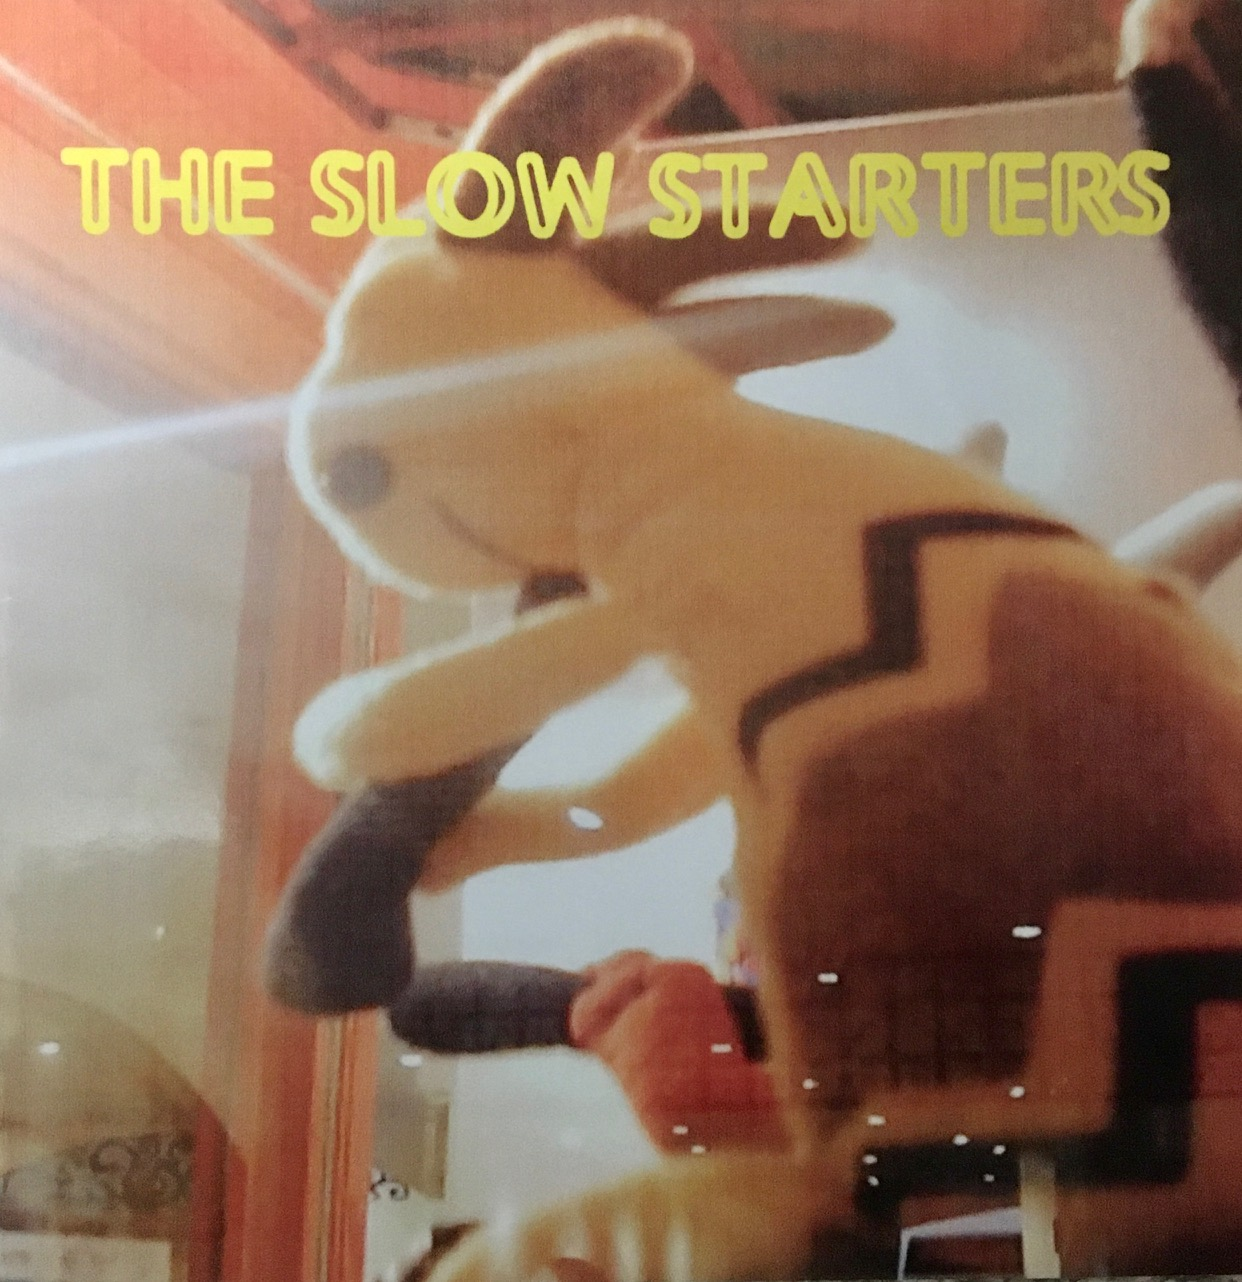 THE SLOW STARTERS